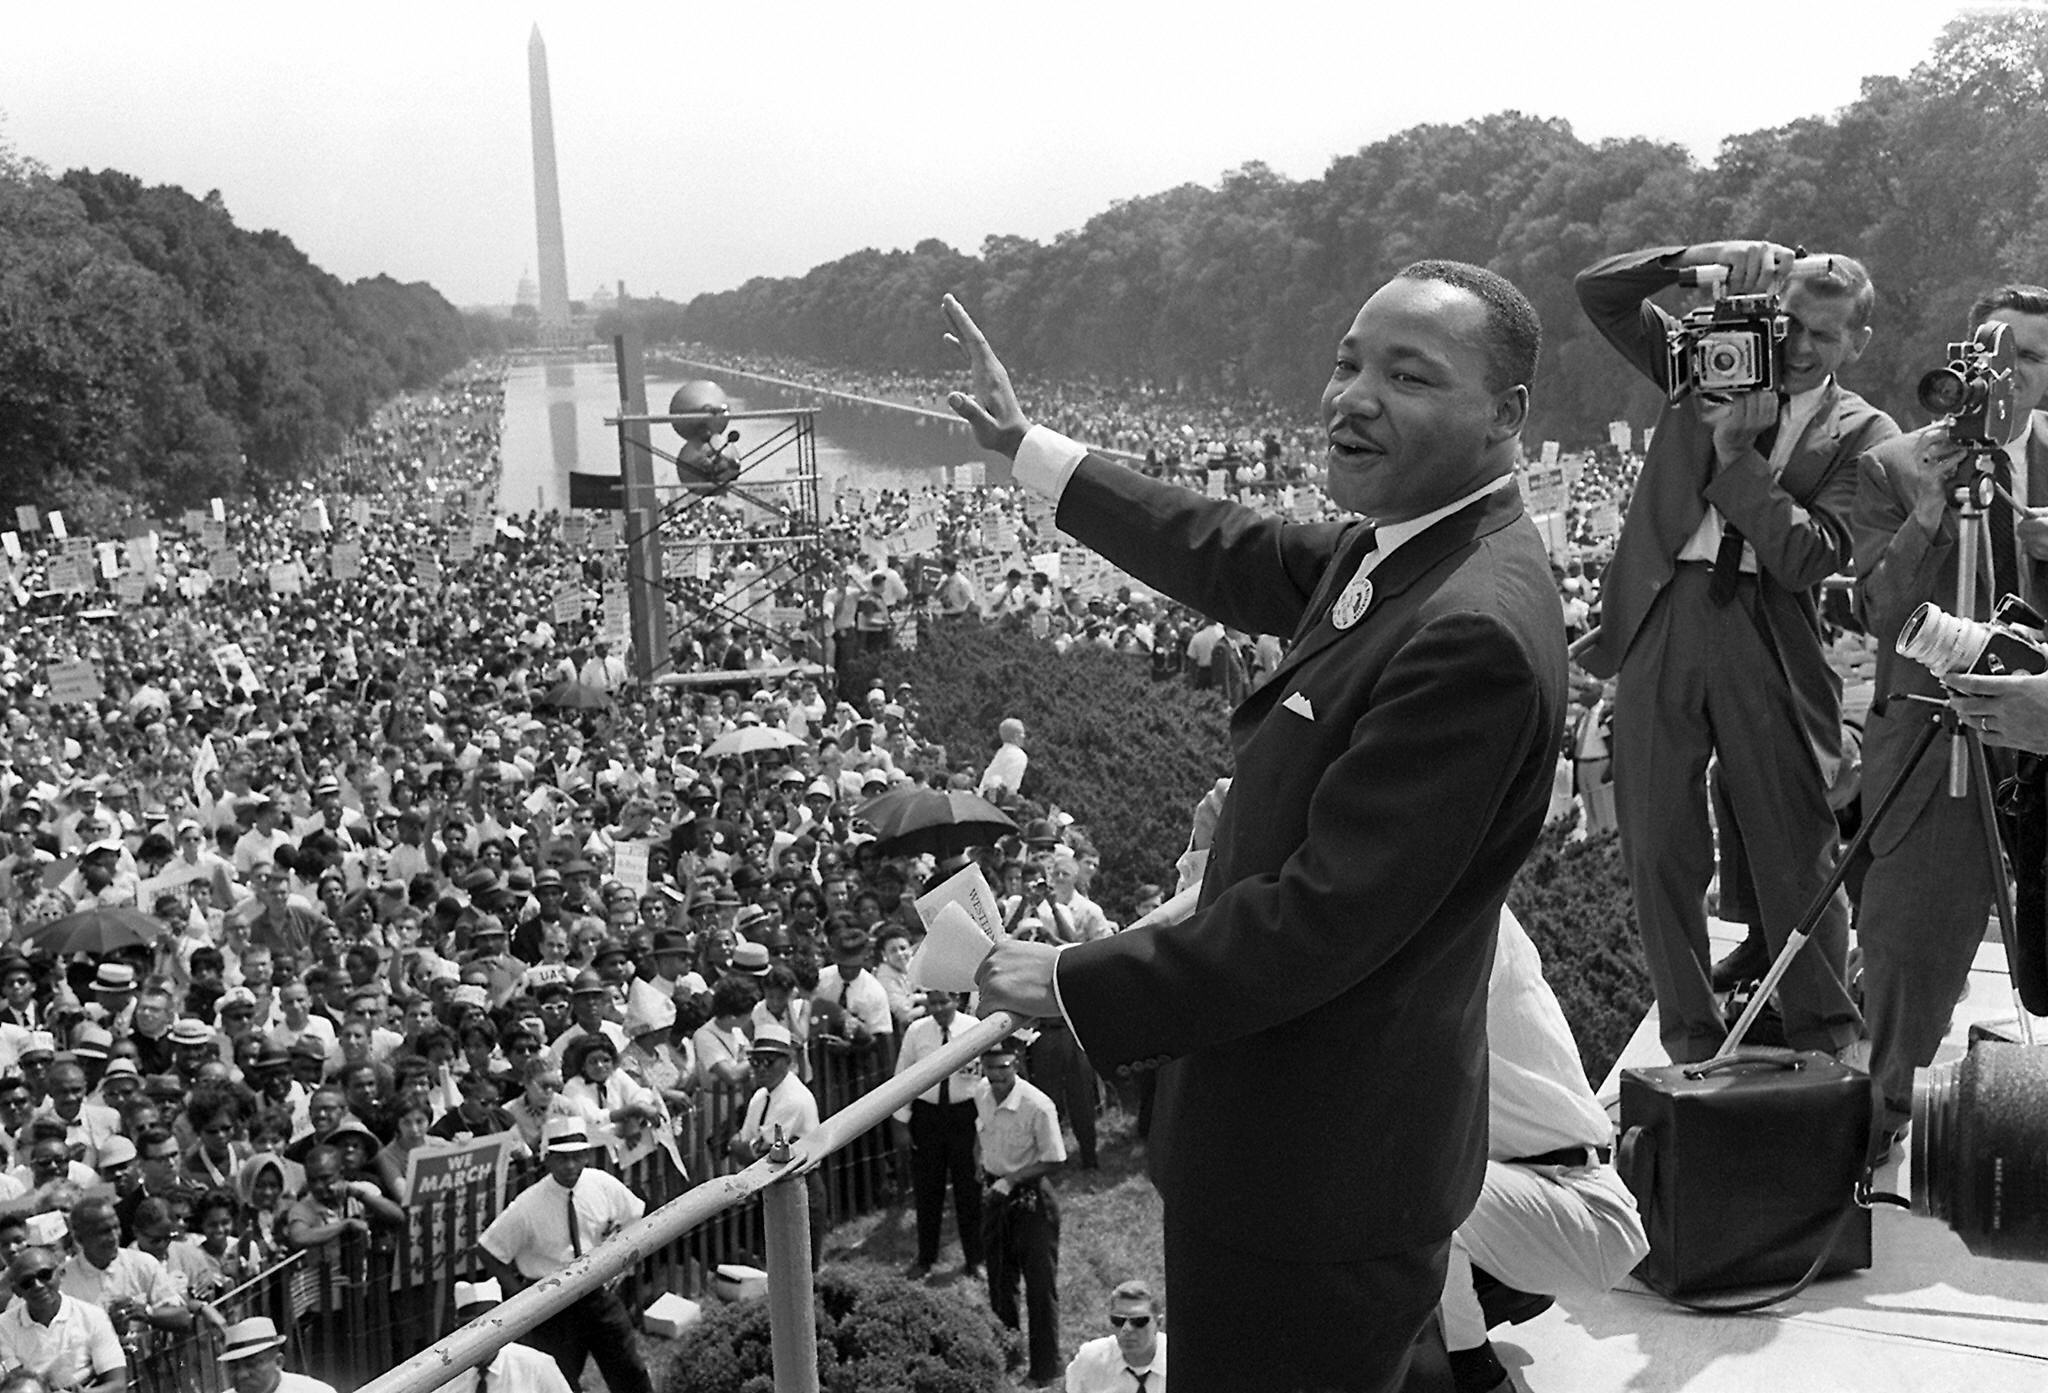 Martin Luther King, Jr. waves to supporters from the steps of the Lincoln Memorial 28 August 1963 on the Mall in Washington DC (AFP/Getty Images)